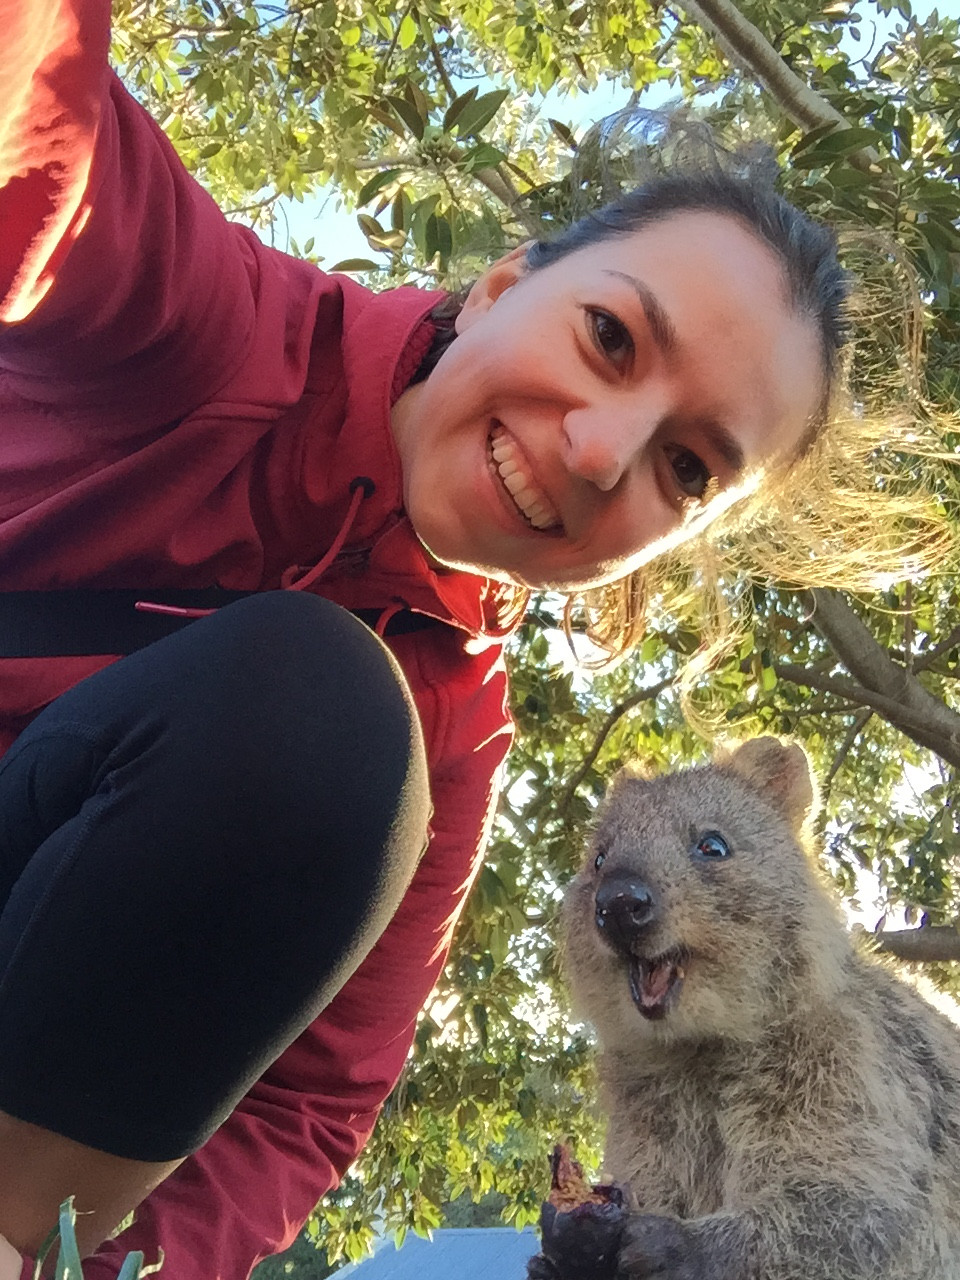 Selfie with a quokka